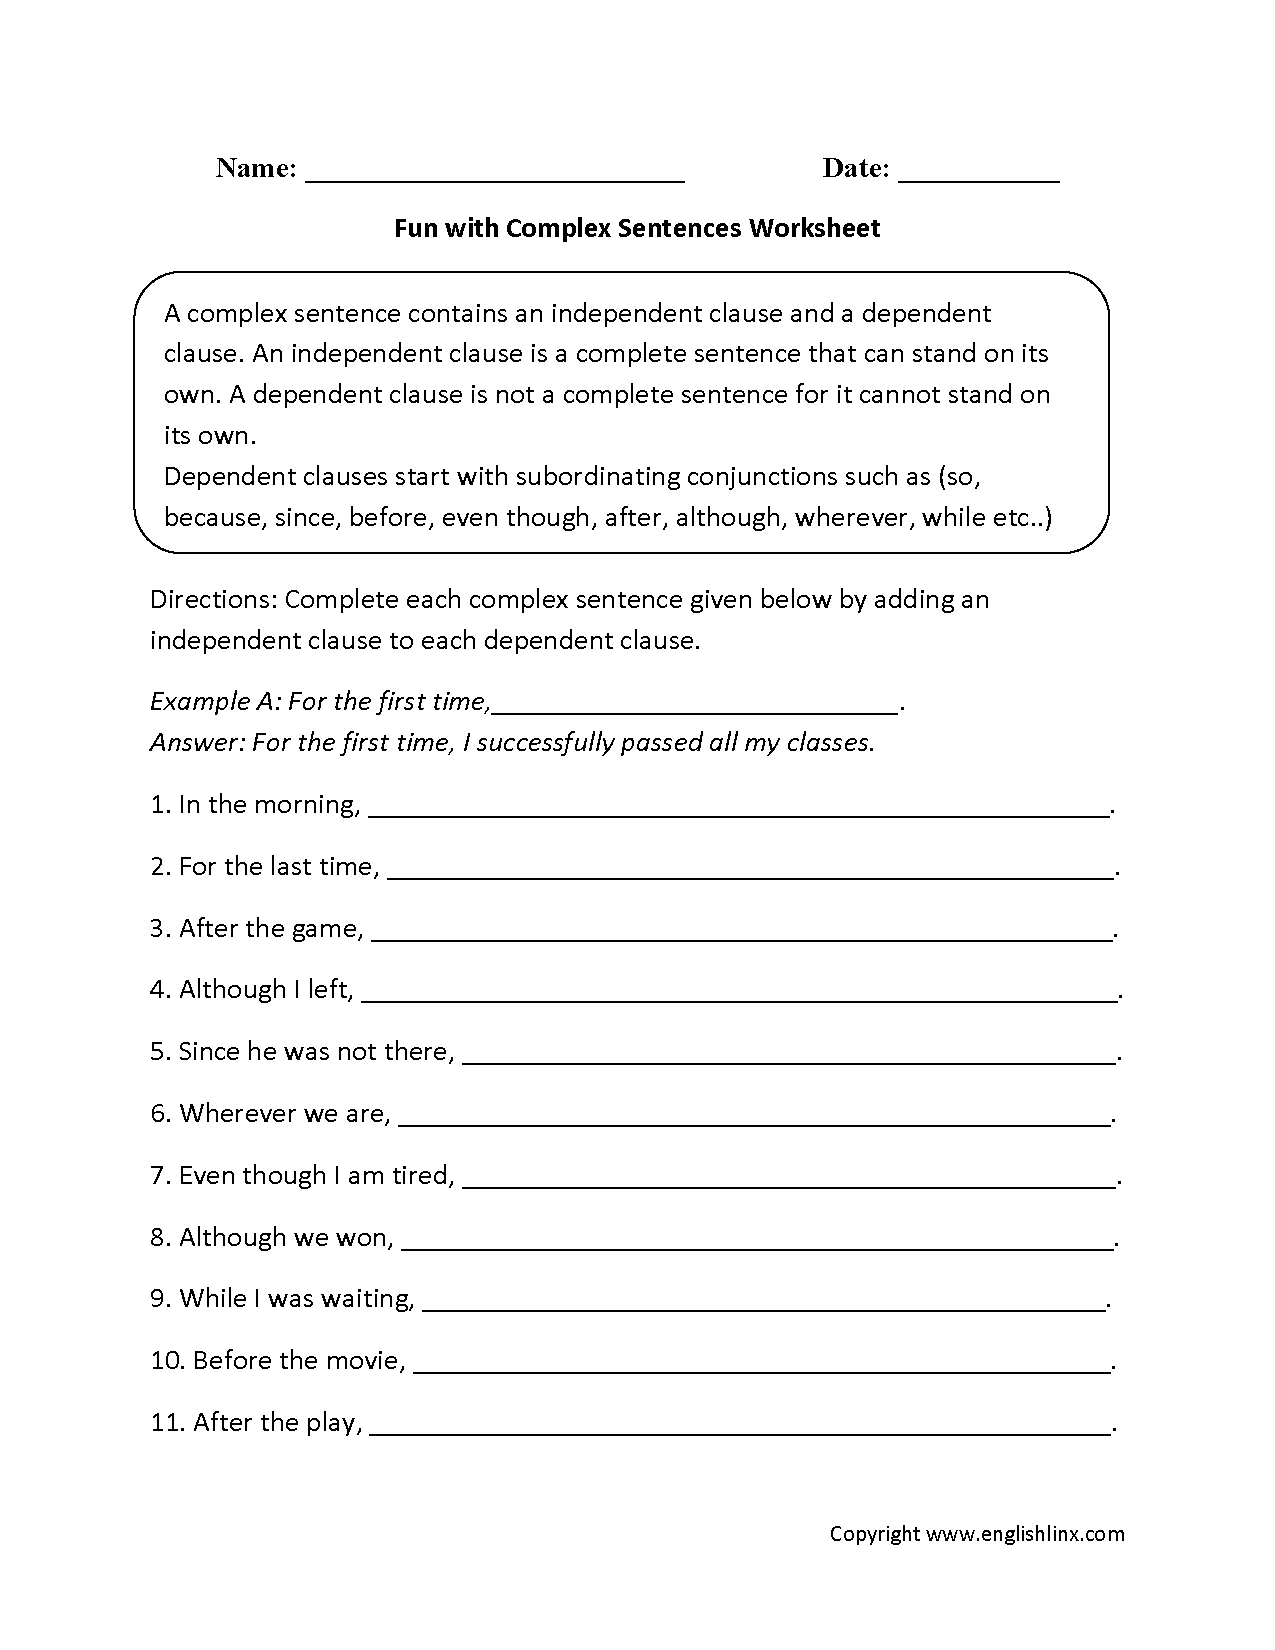 small resolution of Complex Sentences Worksheets   Fun with Complex Sentences Worksheet    Complex sentences worksheets